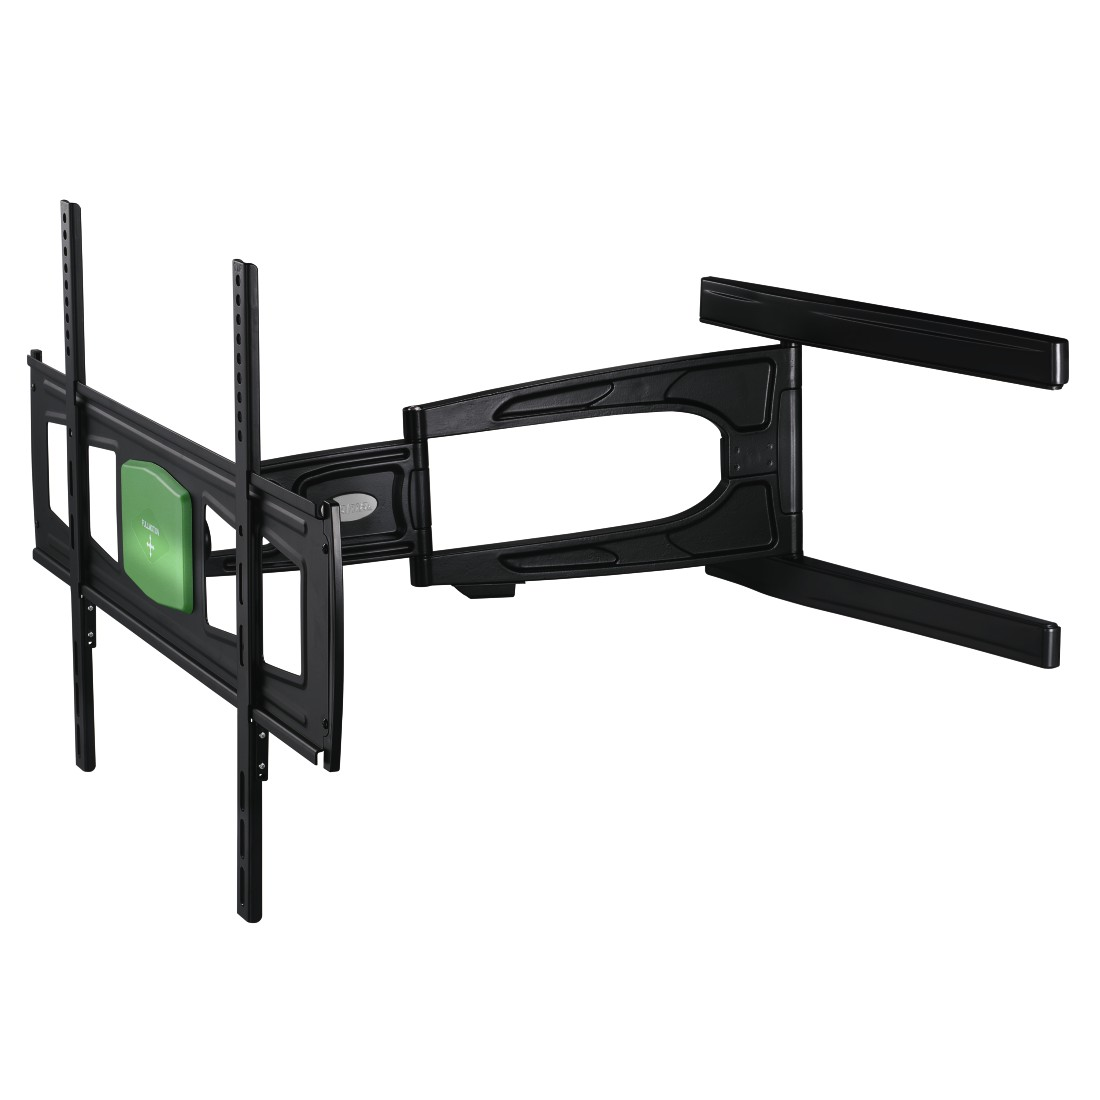 dex7 High-Res Detail 7 - Hama, Ultraslim FULLMOTION TV Wall Bracket, 3 stars, 165 cm (65), 2 arms, bk